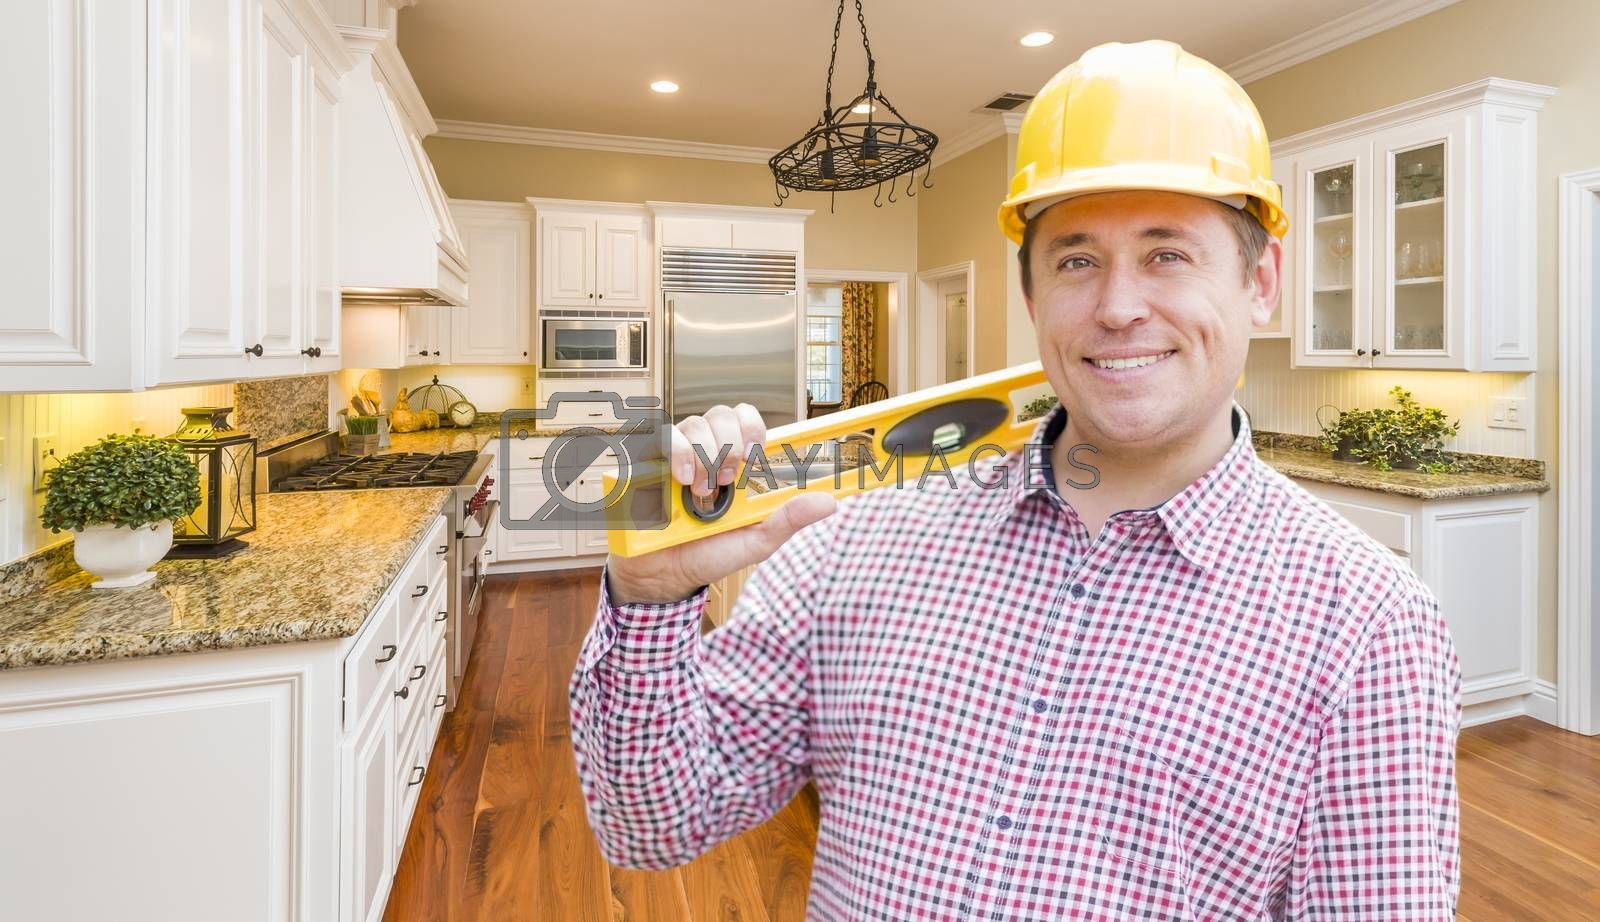 Royalty free image of Contractor with Level Wearing Hard Hat Standing In Custom Kitche by Feverpitched